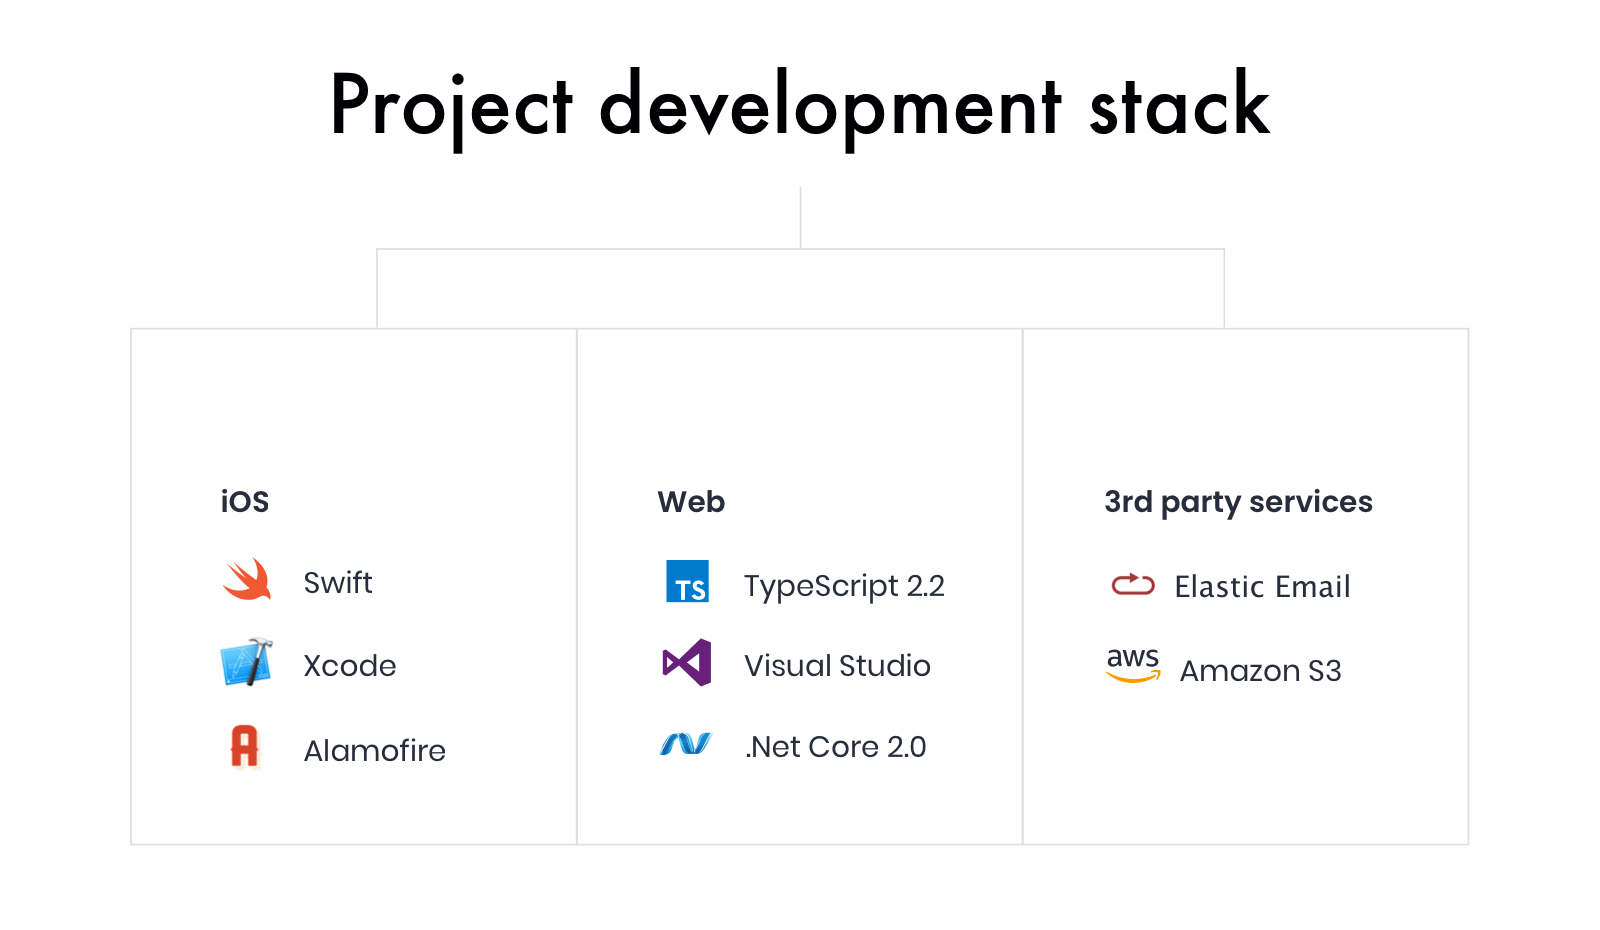 Nedley Scorecard: Project development stack